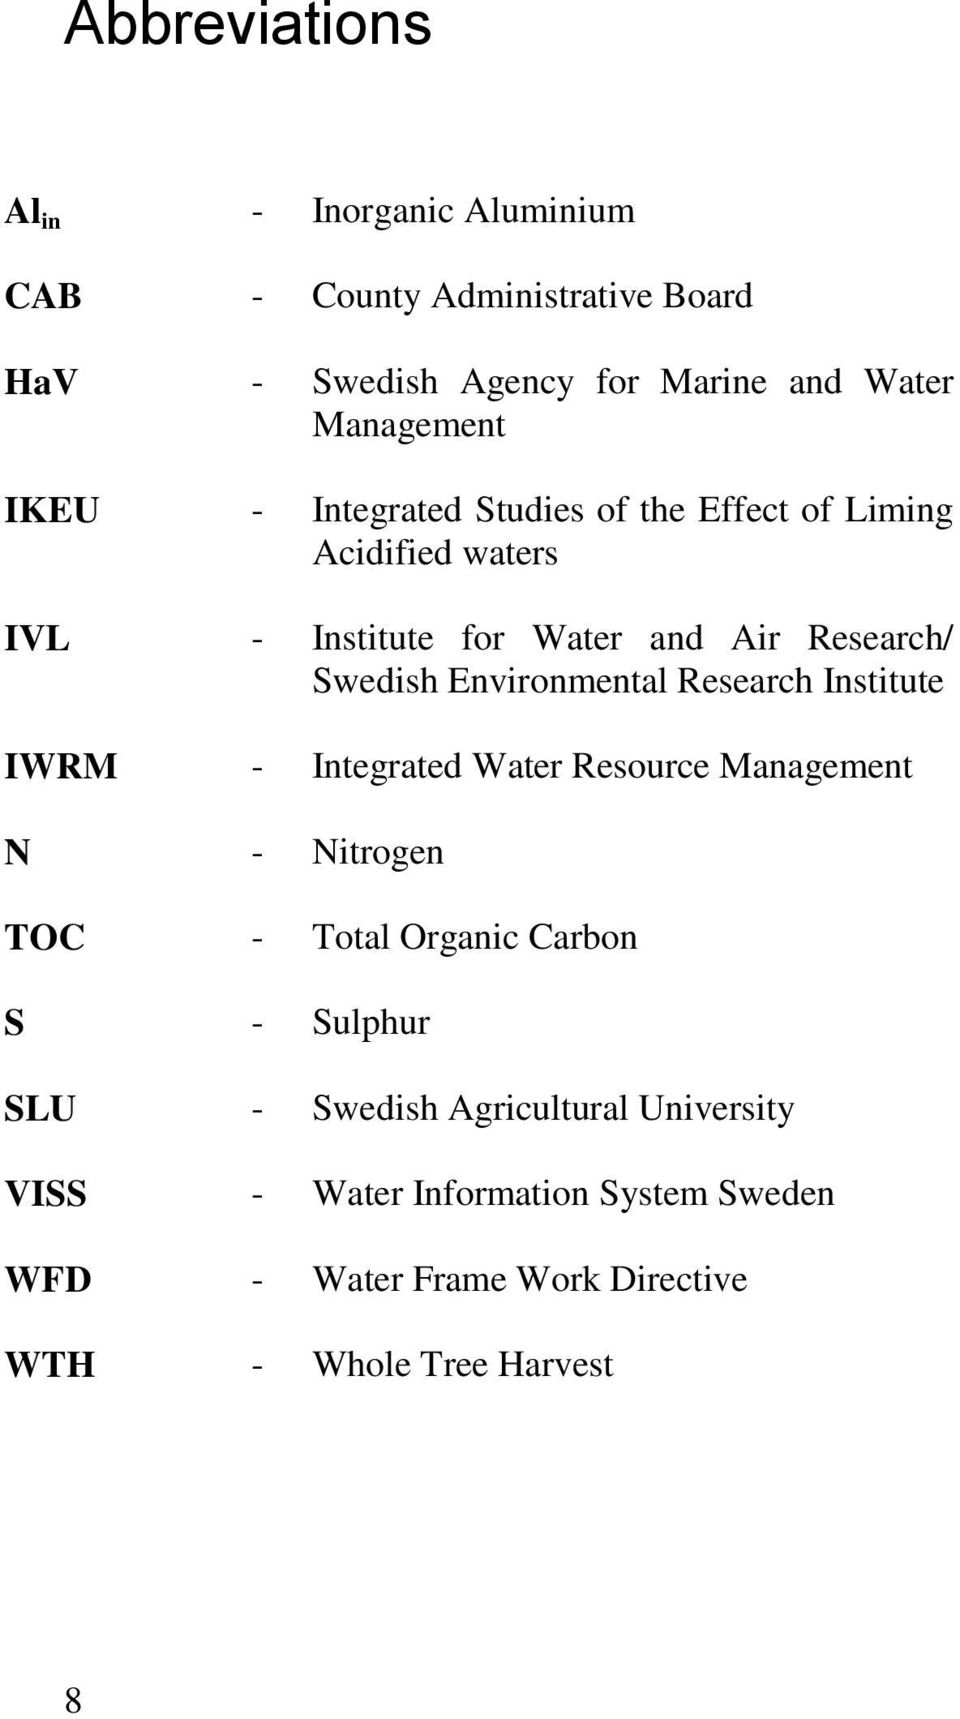 Environmental Research Institute IWRM - Integrated Water Resource Management N - Nitrogen TOC - Total Organic Carbon S - Sulphur